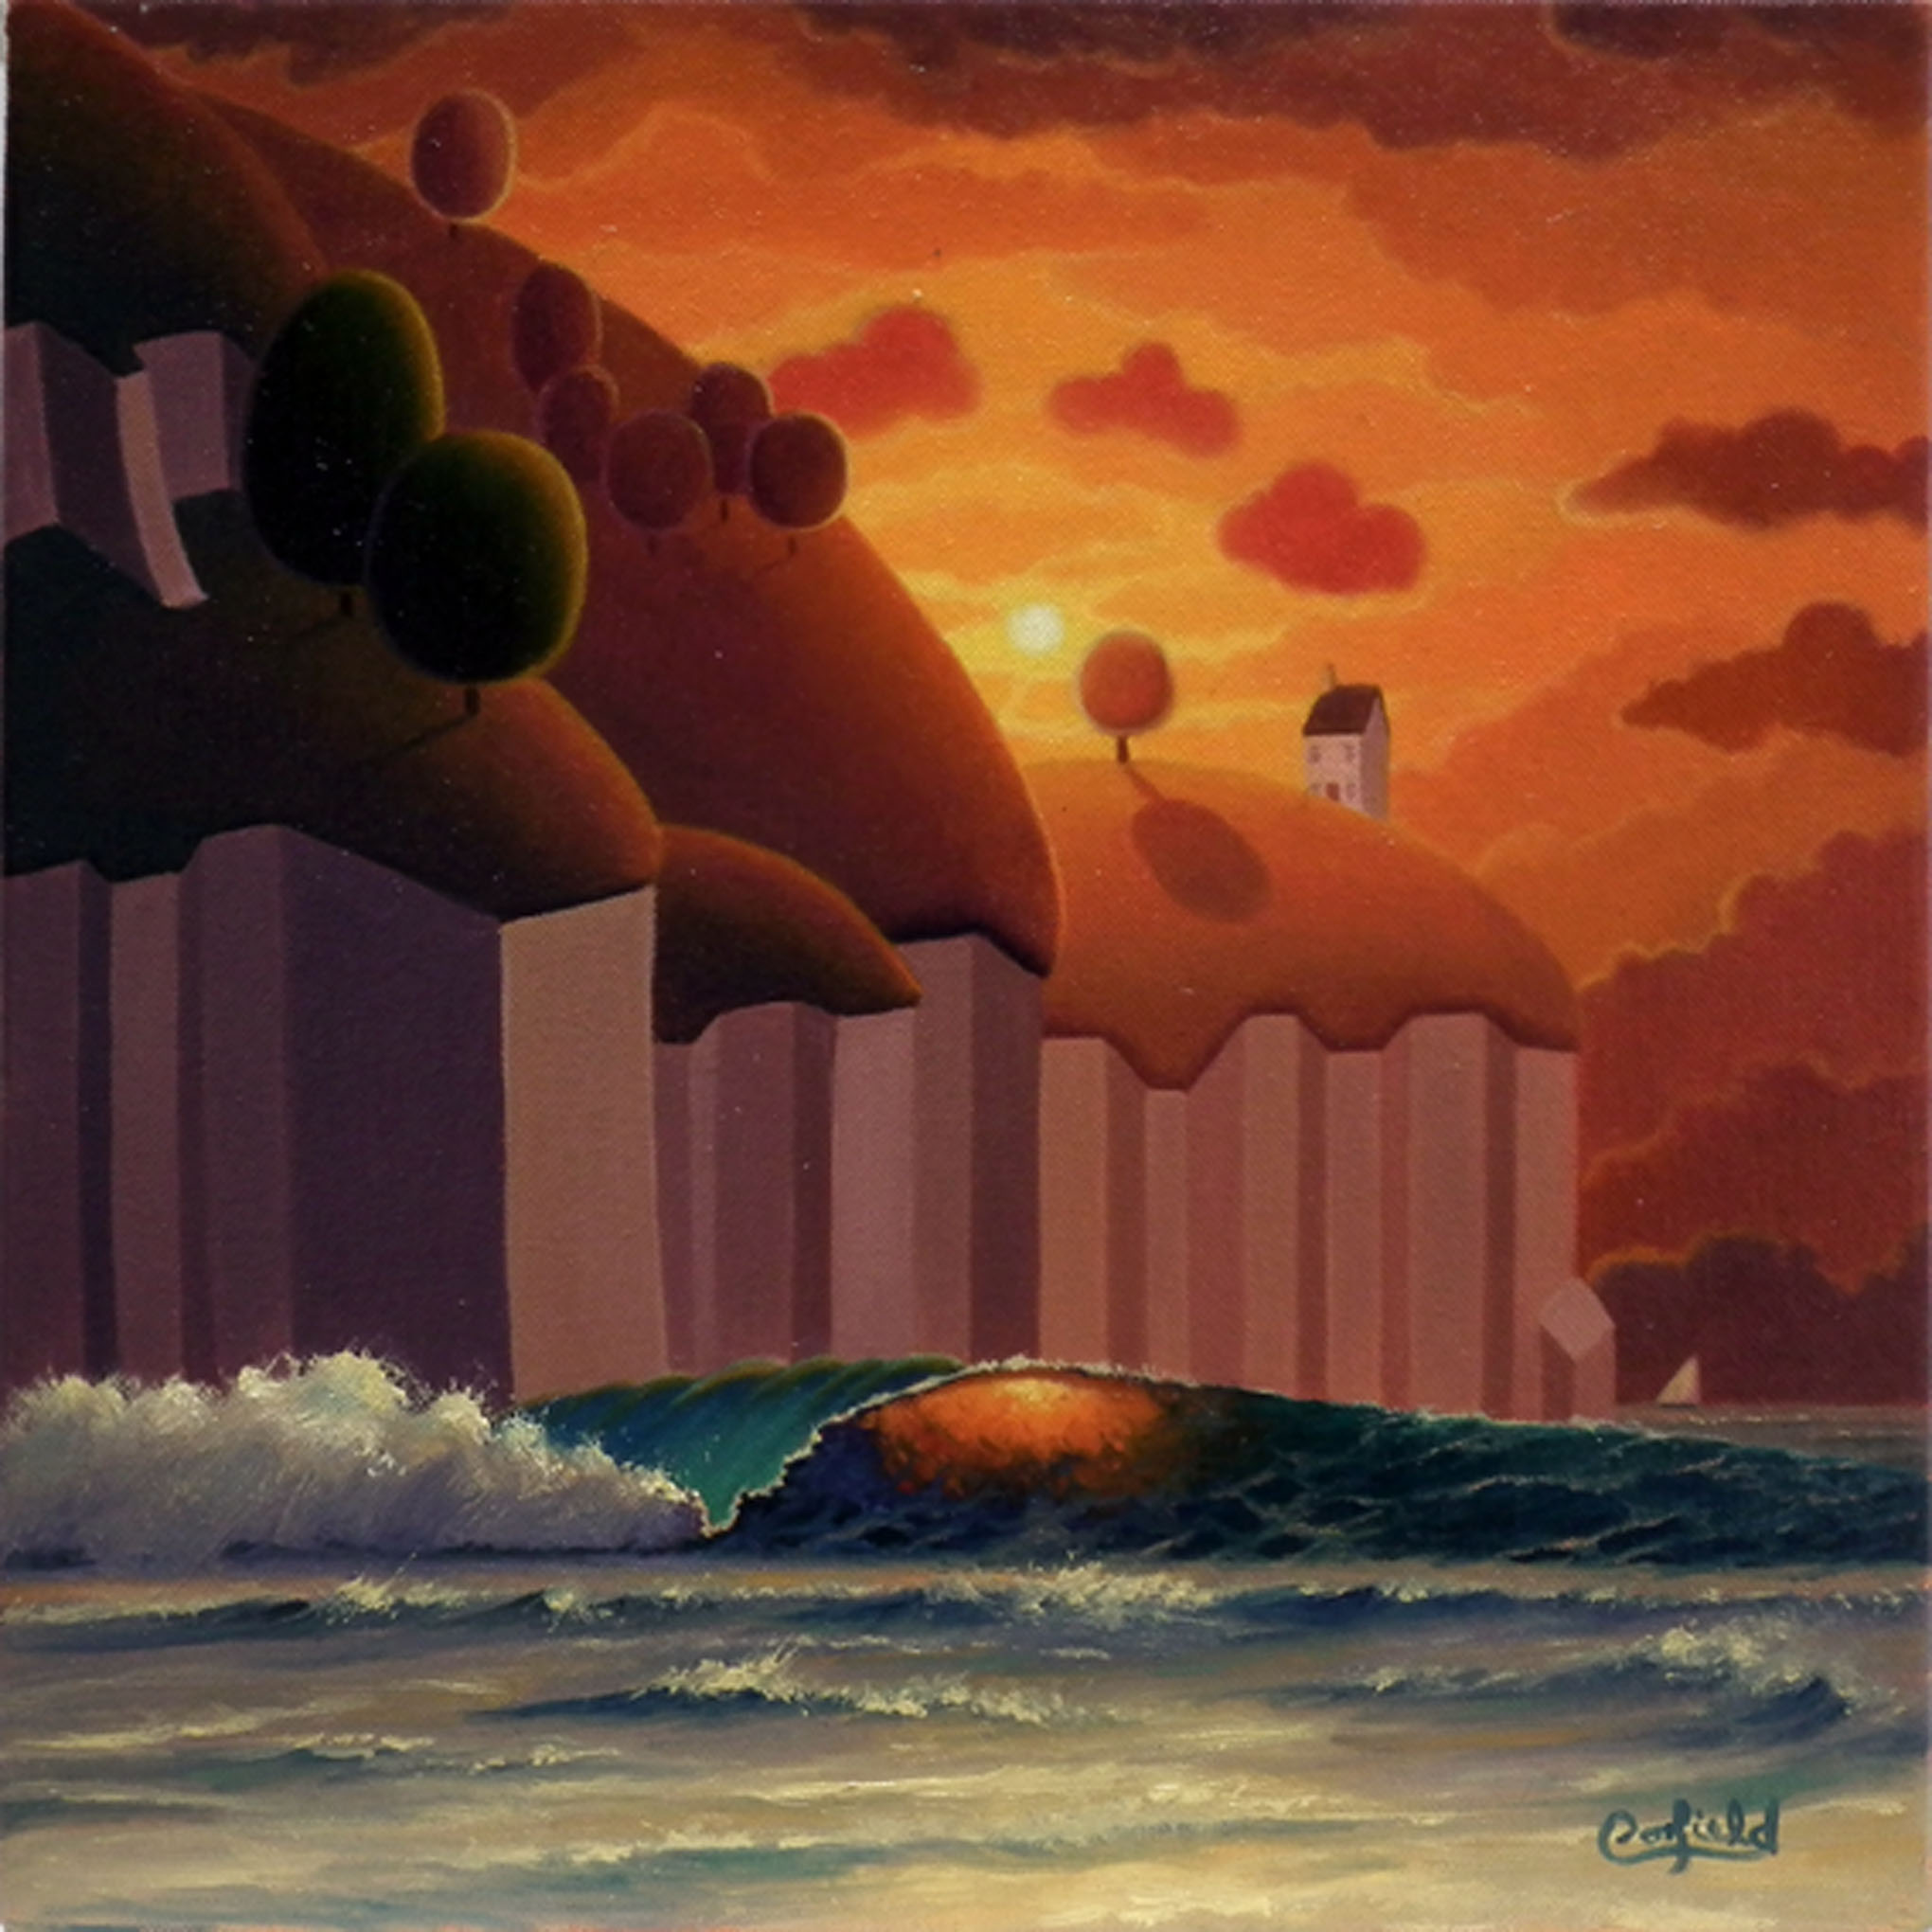 Untitled Study No. 130 by Paul Corfield